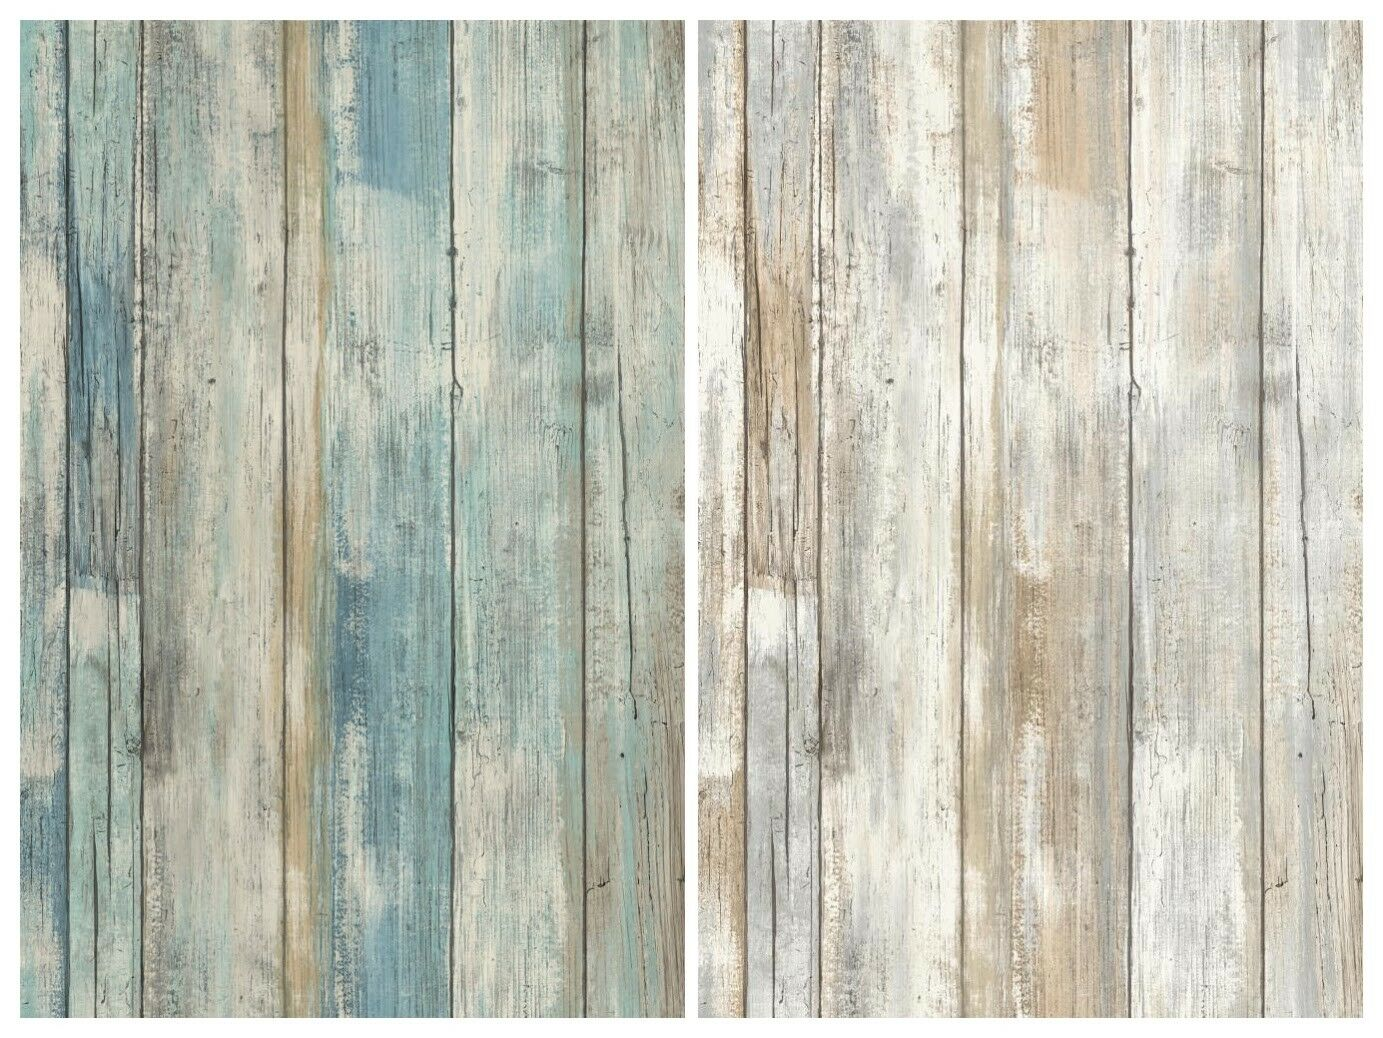 Distressed Wood L And Stick Wallpaper Gray Brown White Realistic Barnwood 1 Of 12free Shipping